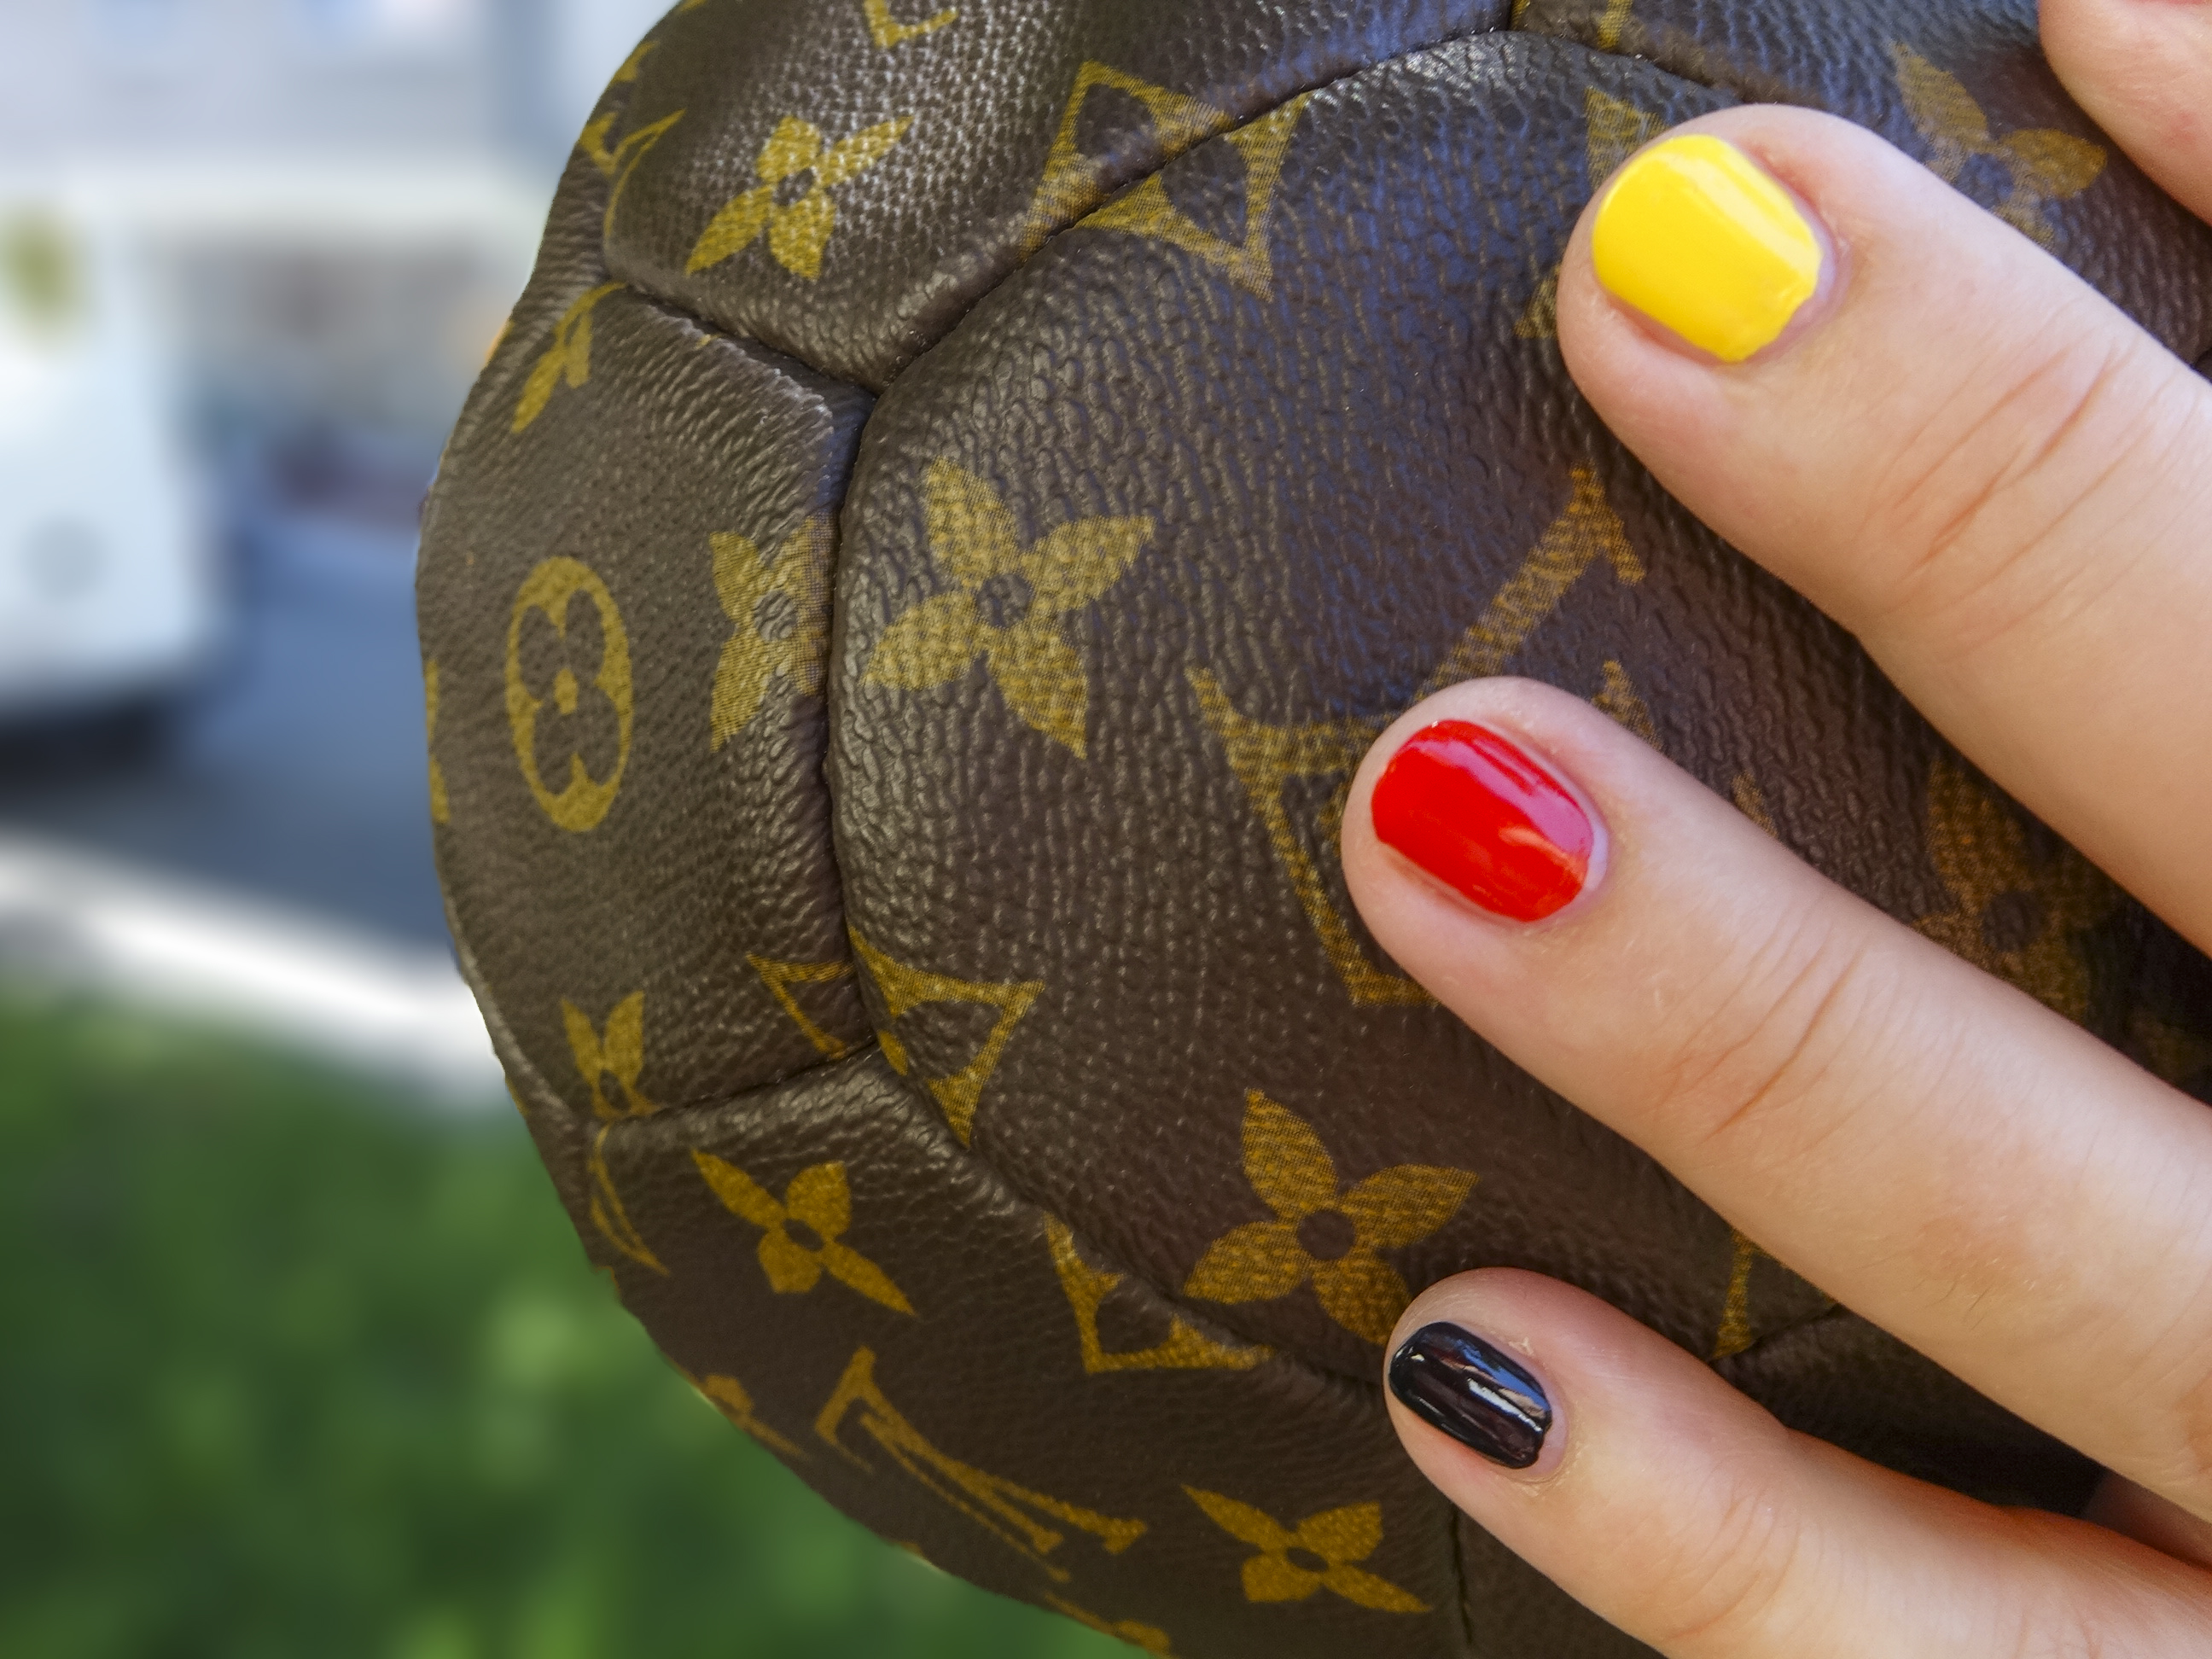 Louis Vuitton Fussball Ballon essence go go goal www.happyface313.com